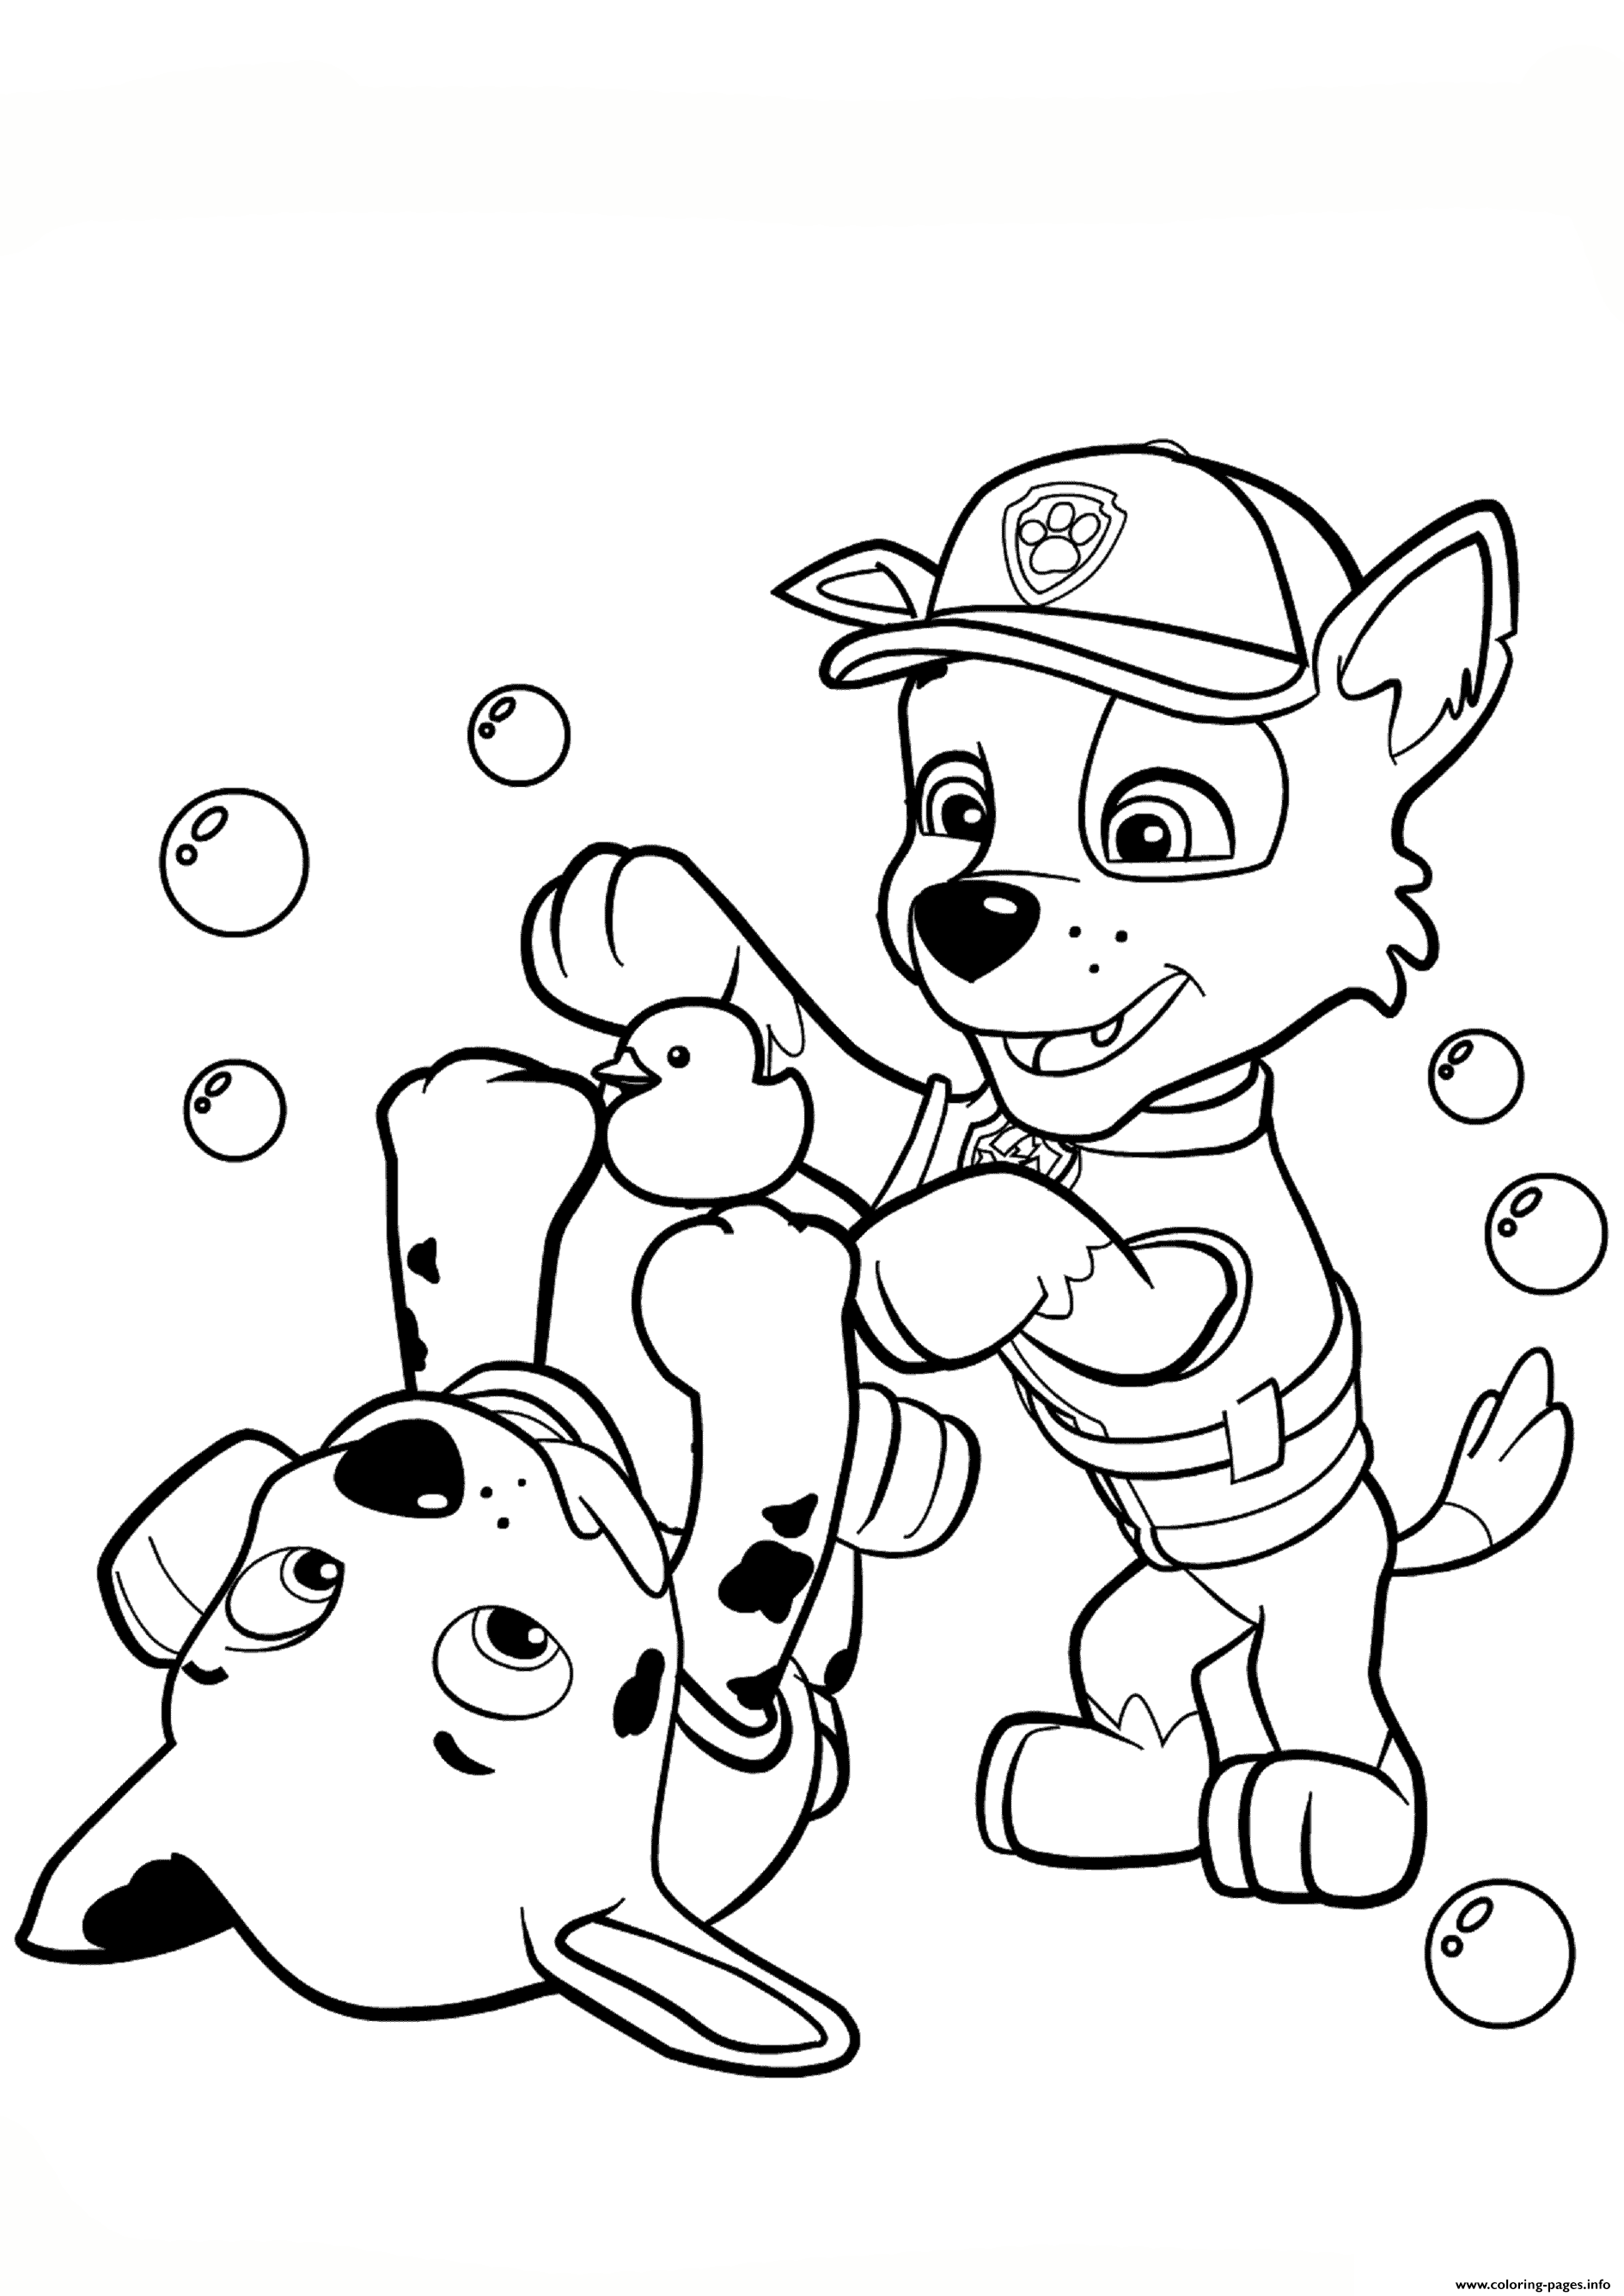 Print paw patrol rocky and marshall coloring pages